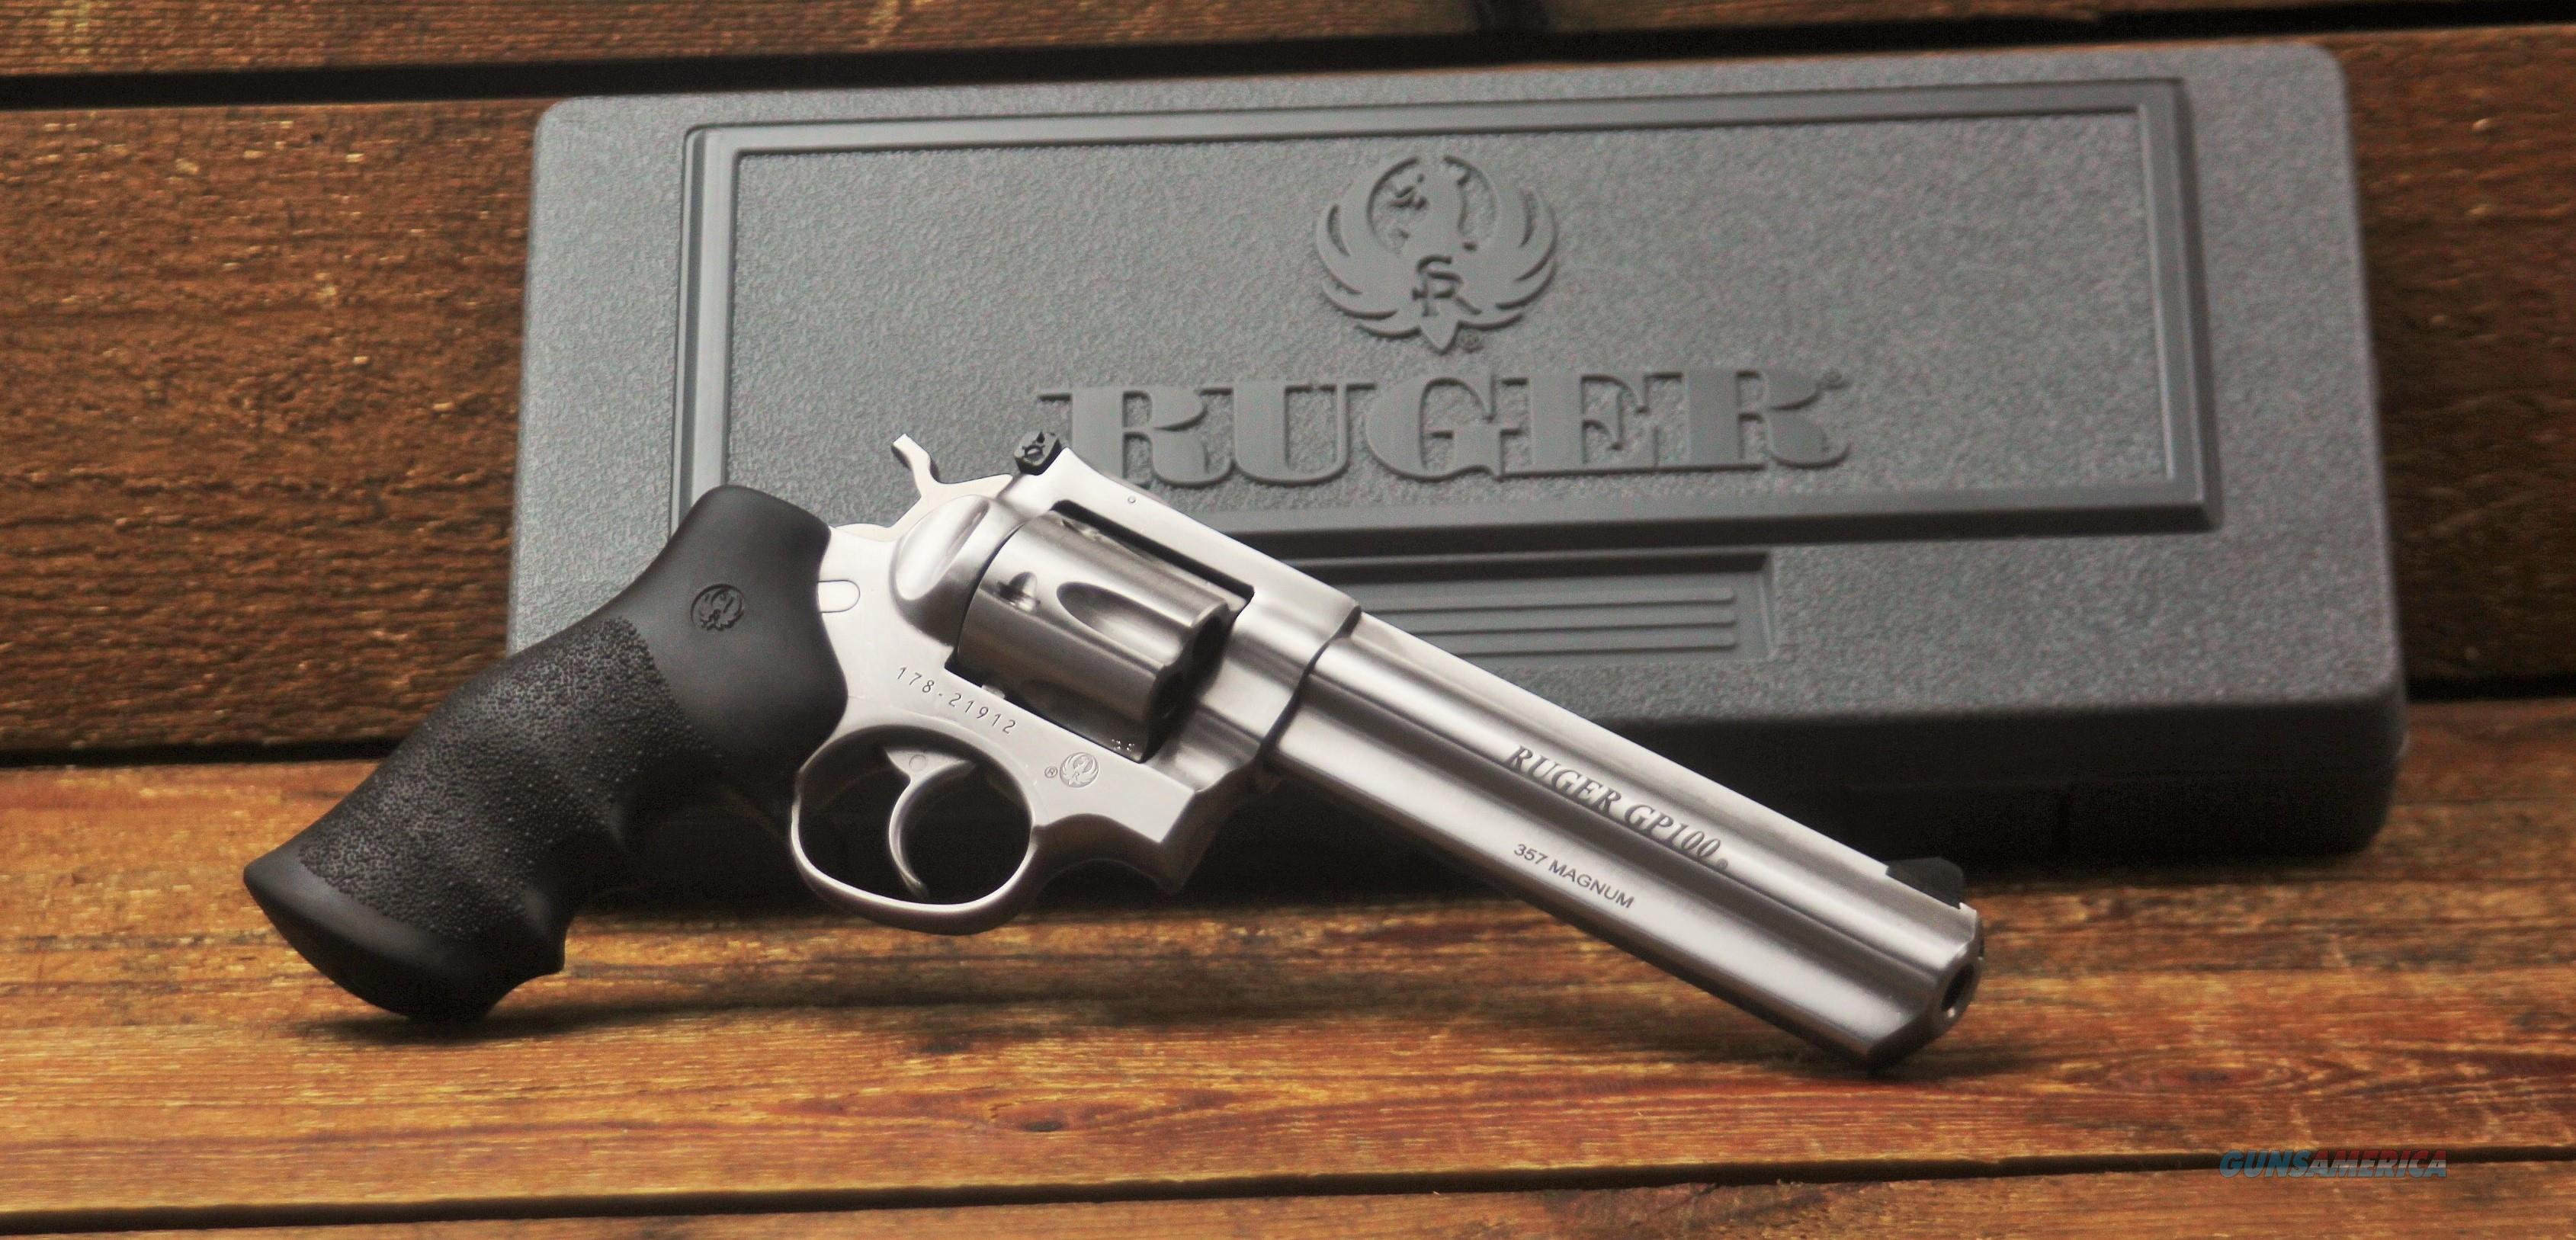 EASY PAY $60 LAYAWAY  Ruger Double-Action Revolver  Heavy full shrouded precision rifled barrel Stainless KGP161 GP100 .357 Remington Magnum precision cowboy 1707 736676017072  Guns > Pistols > Ruger Double Action Revolver > GP100